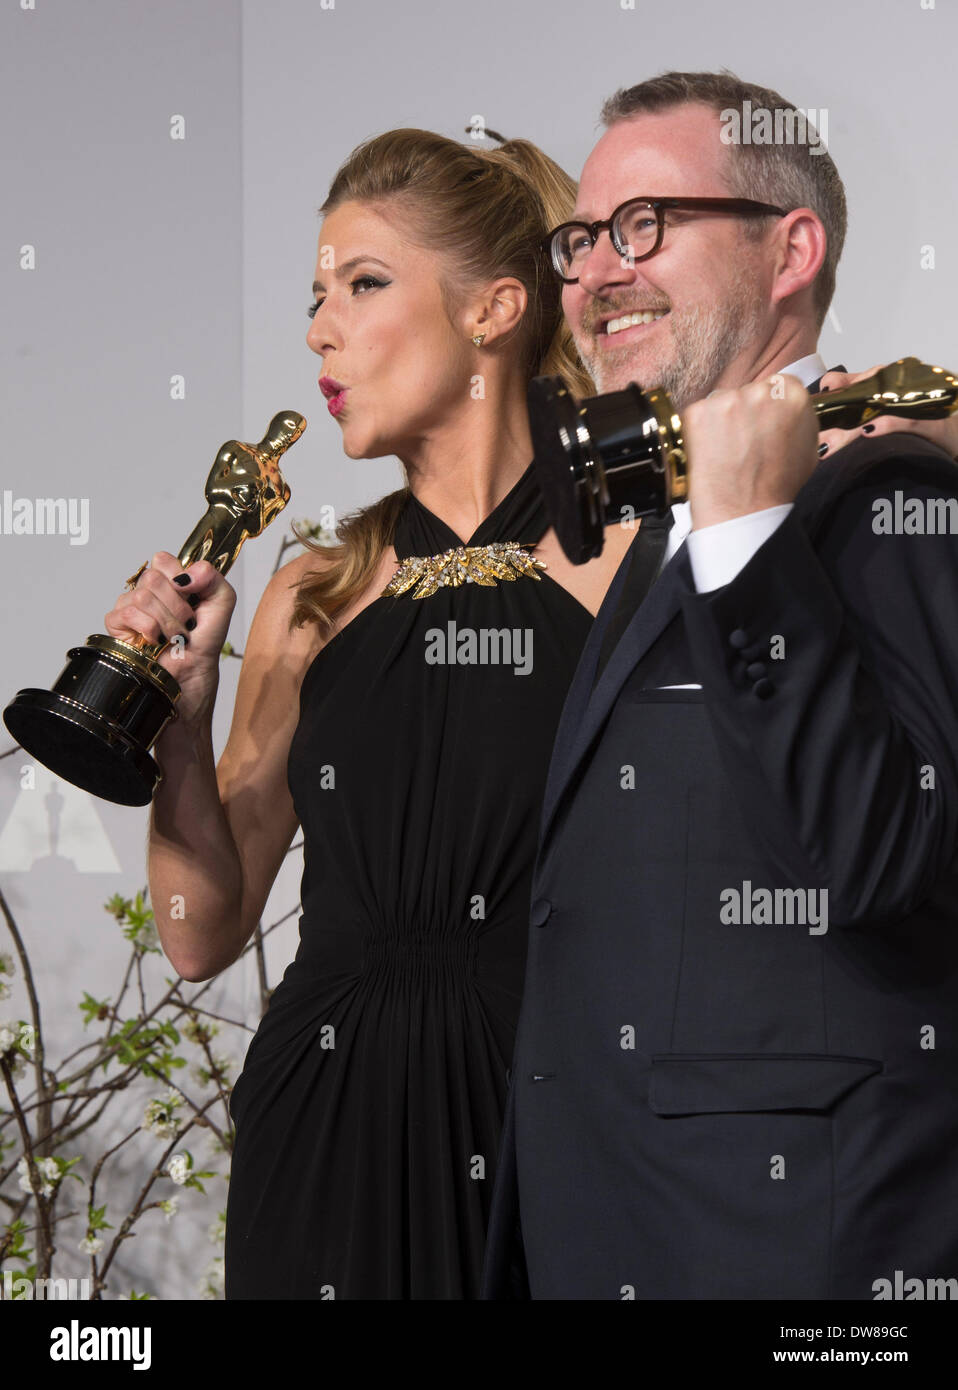 Los Angeles, USA. 2nd Mar, 2014. Morgan Neville (R) and Caitrin Rogers pose after winning the Best Documentary Feature for '20 Feet from Stardom' at the Dolby Theatre in Hollywood, California, the United States, March 2, 2014. Credit:  Yang Lei/Xinhua/Alamy Live News - Stock Image